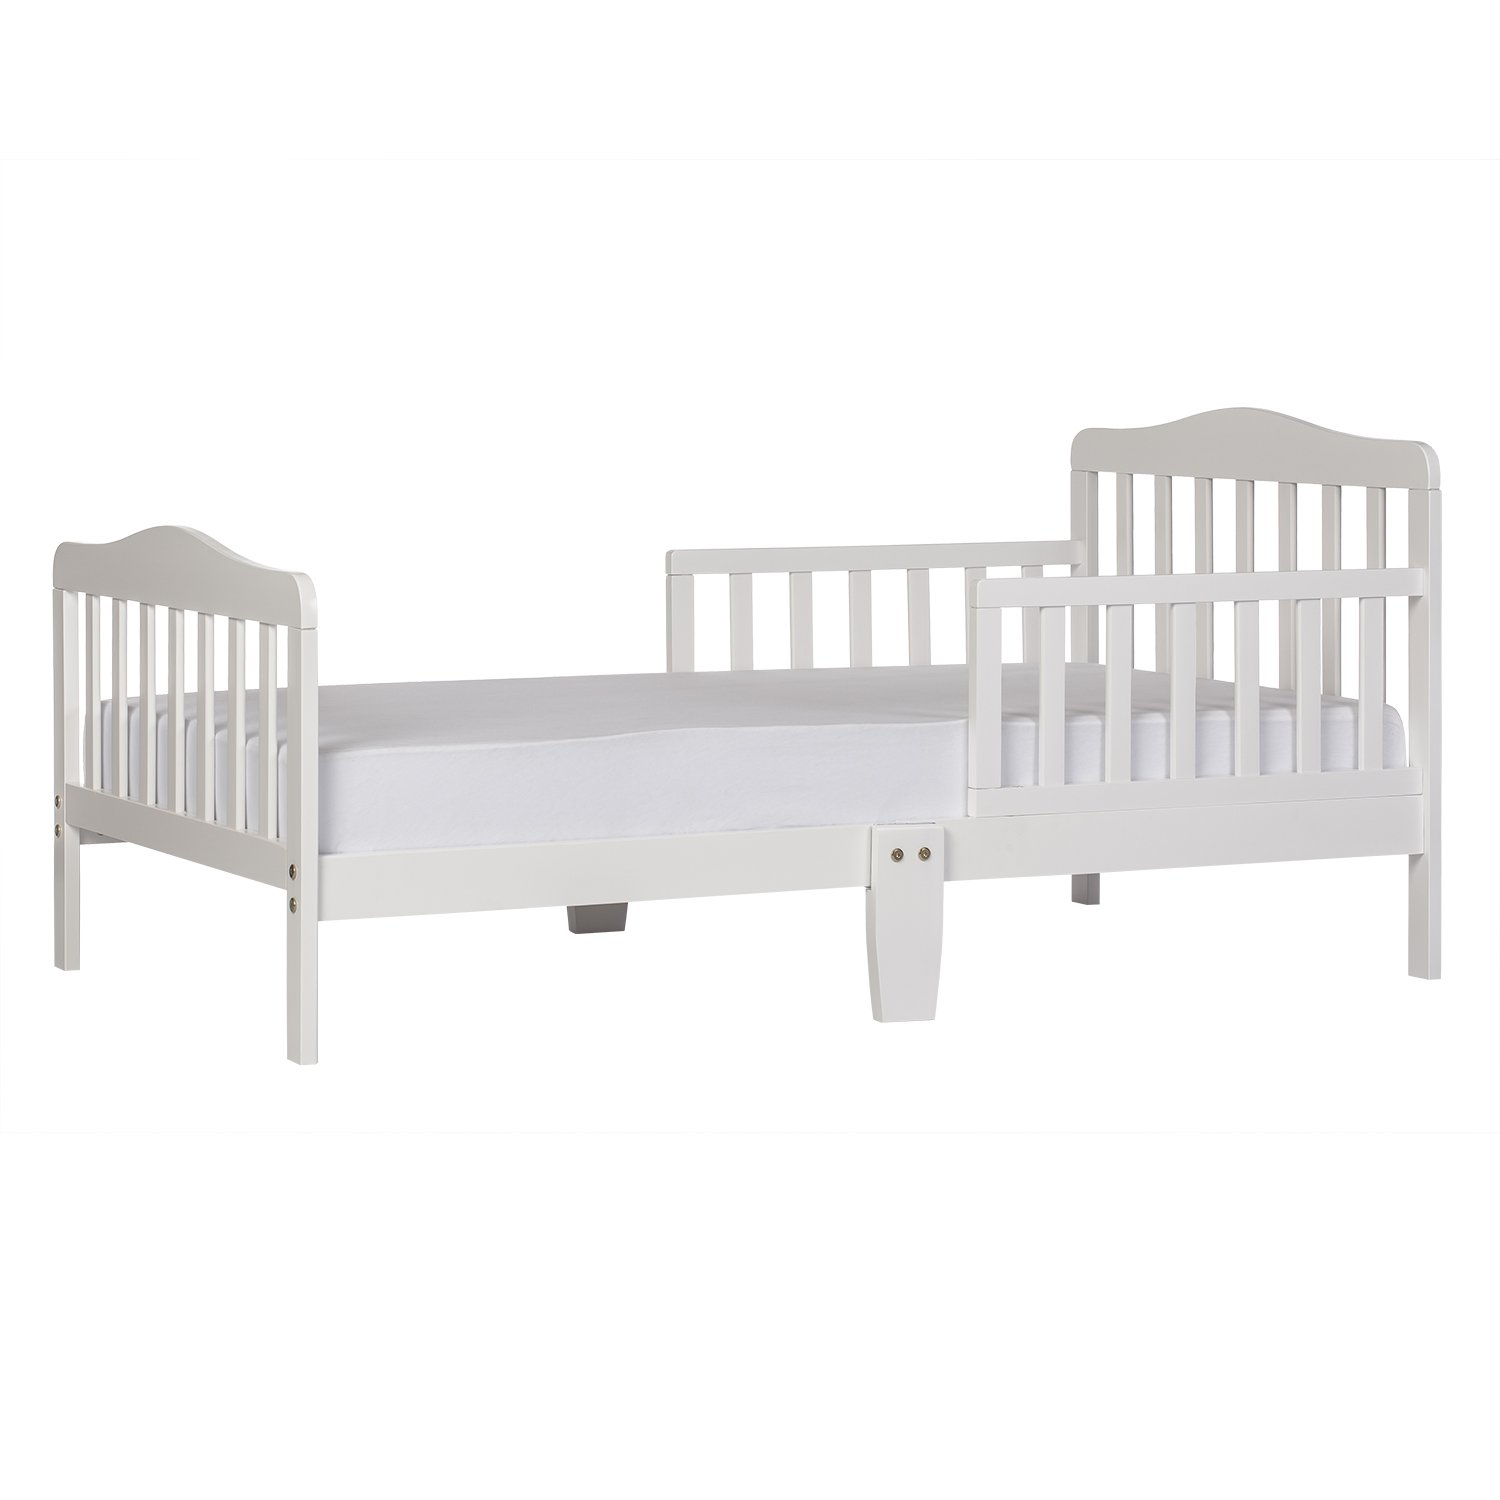 Amazoncom Dream On Me Classic Design Toddler Bed Baby